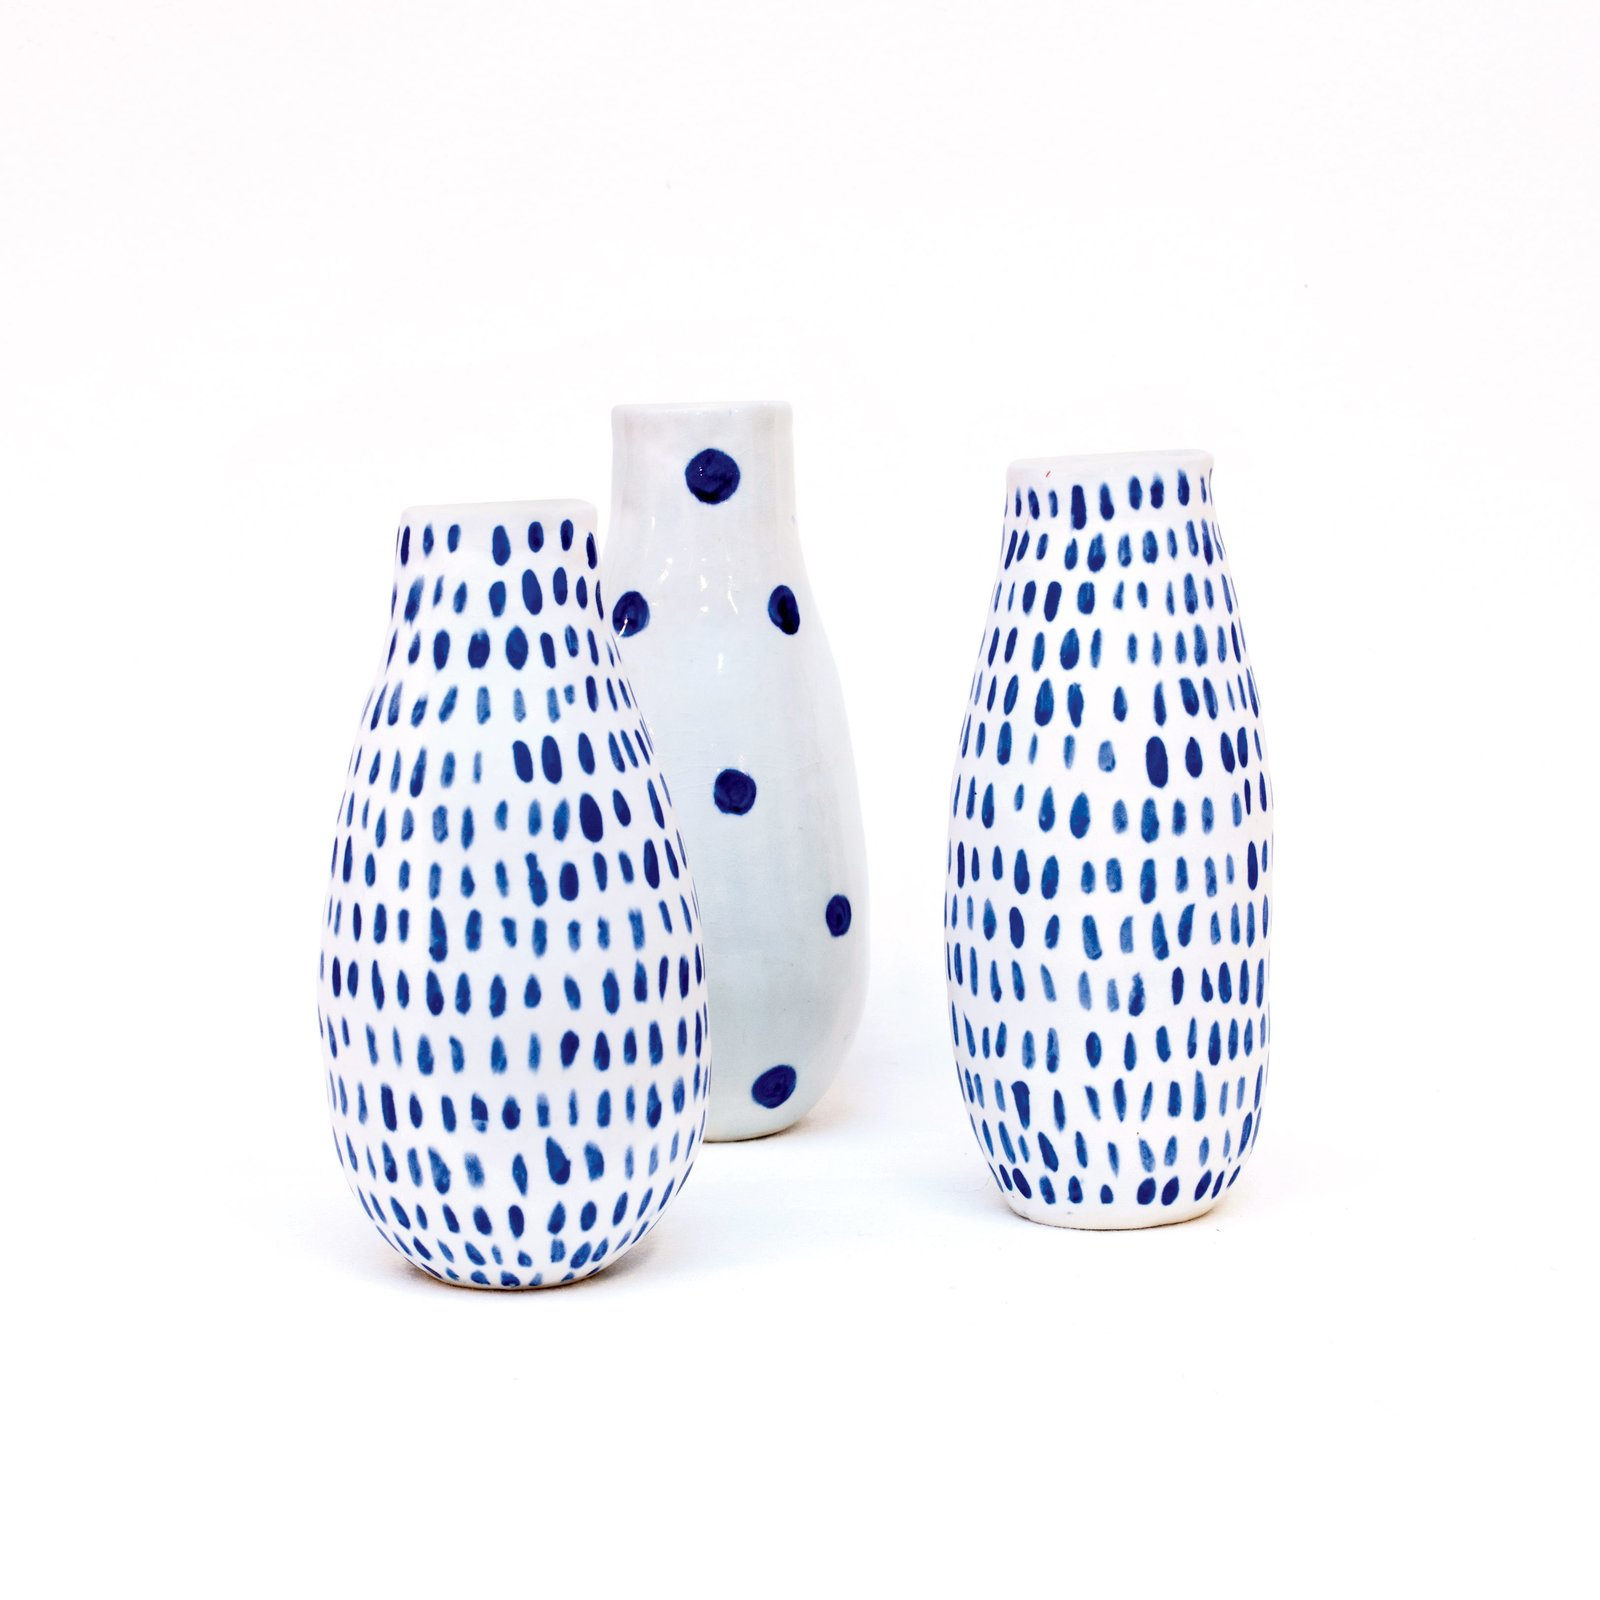 Pittburgh, Pennsylvania  Vases by Reiko Yamamoto, $85 each. Ceramicist Reiko Yamamoto creates porcelain tabletop objects with simple forms and poetic imperfections by intuitively responding to the clay as she works.  Photo 2 of 9 in 9 Modern Designs That Were Born in the USA